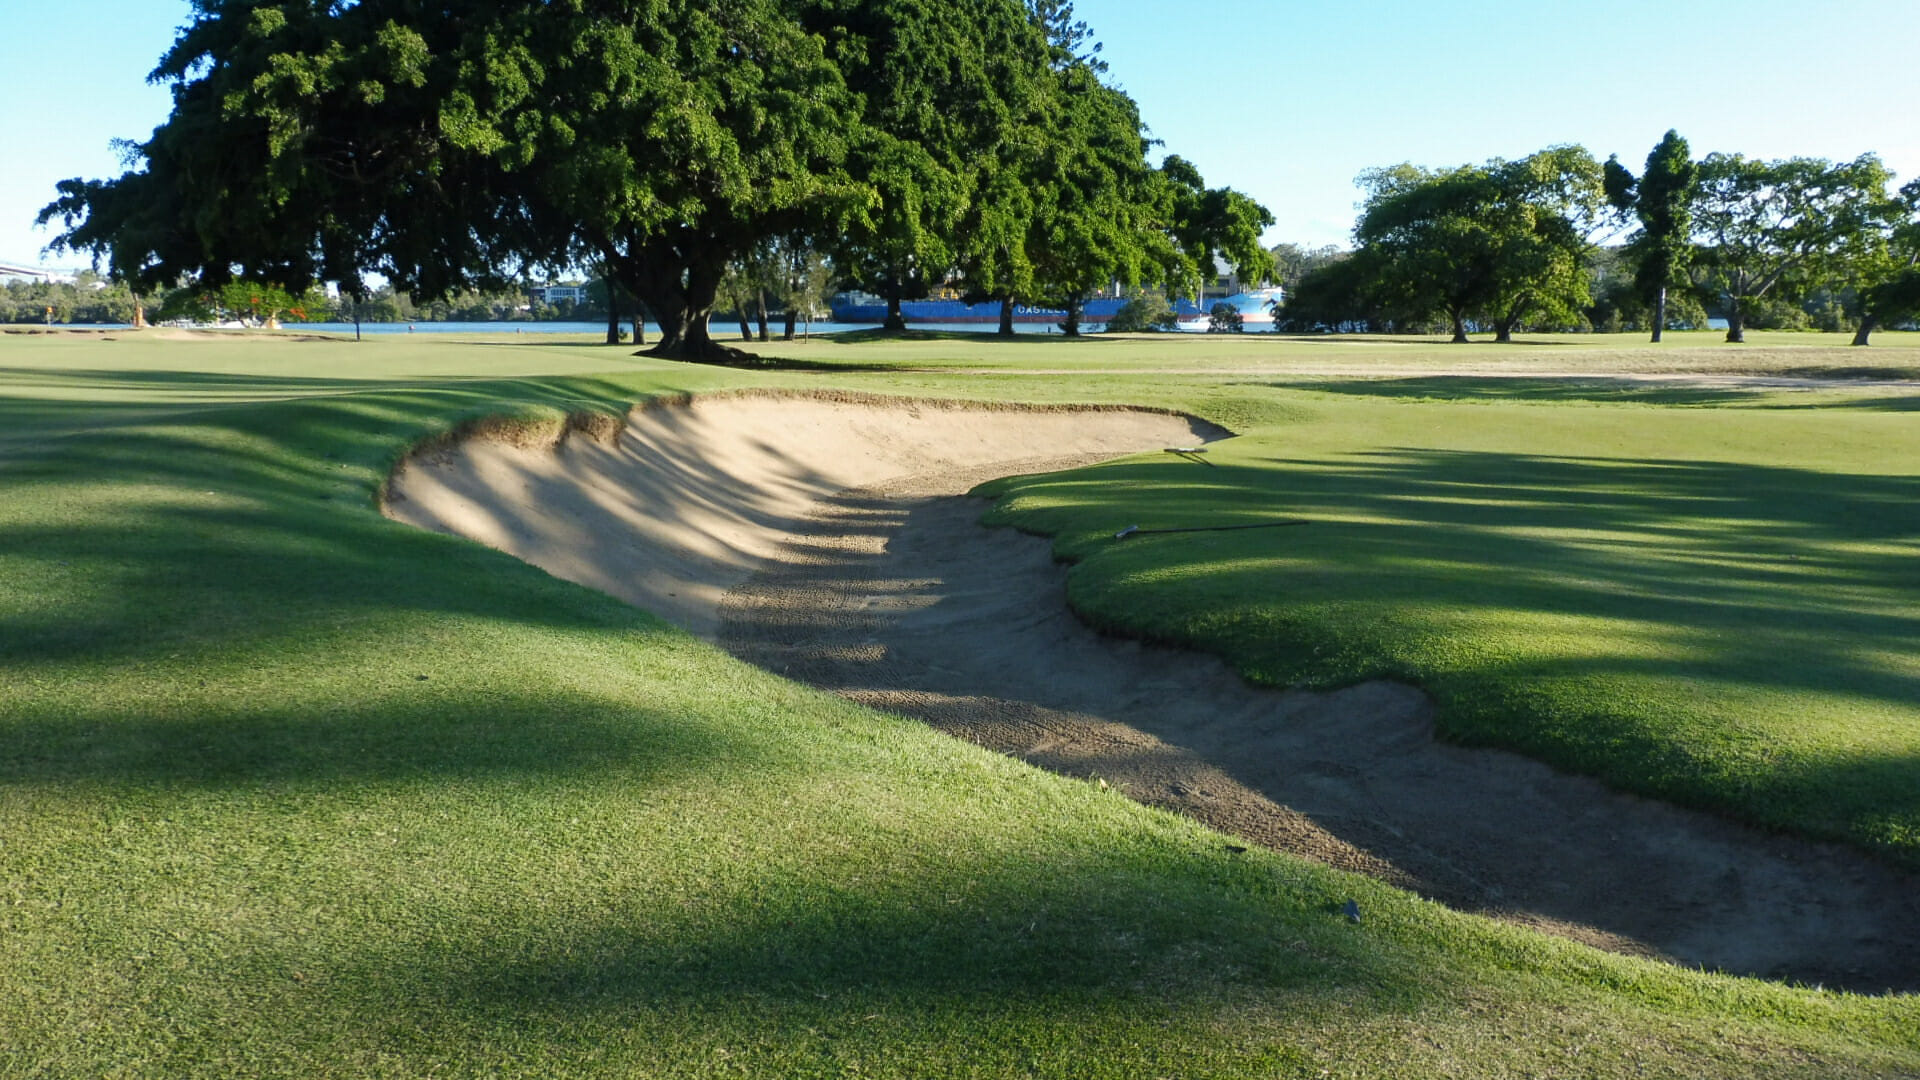 Large bunker frames the tenth green at Royal Queensland